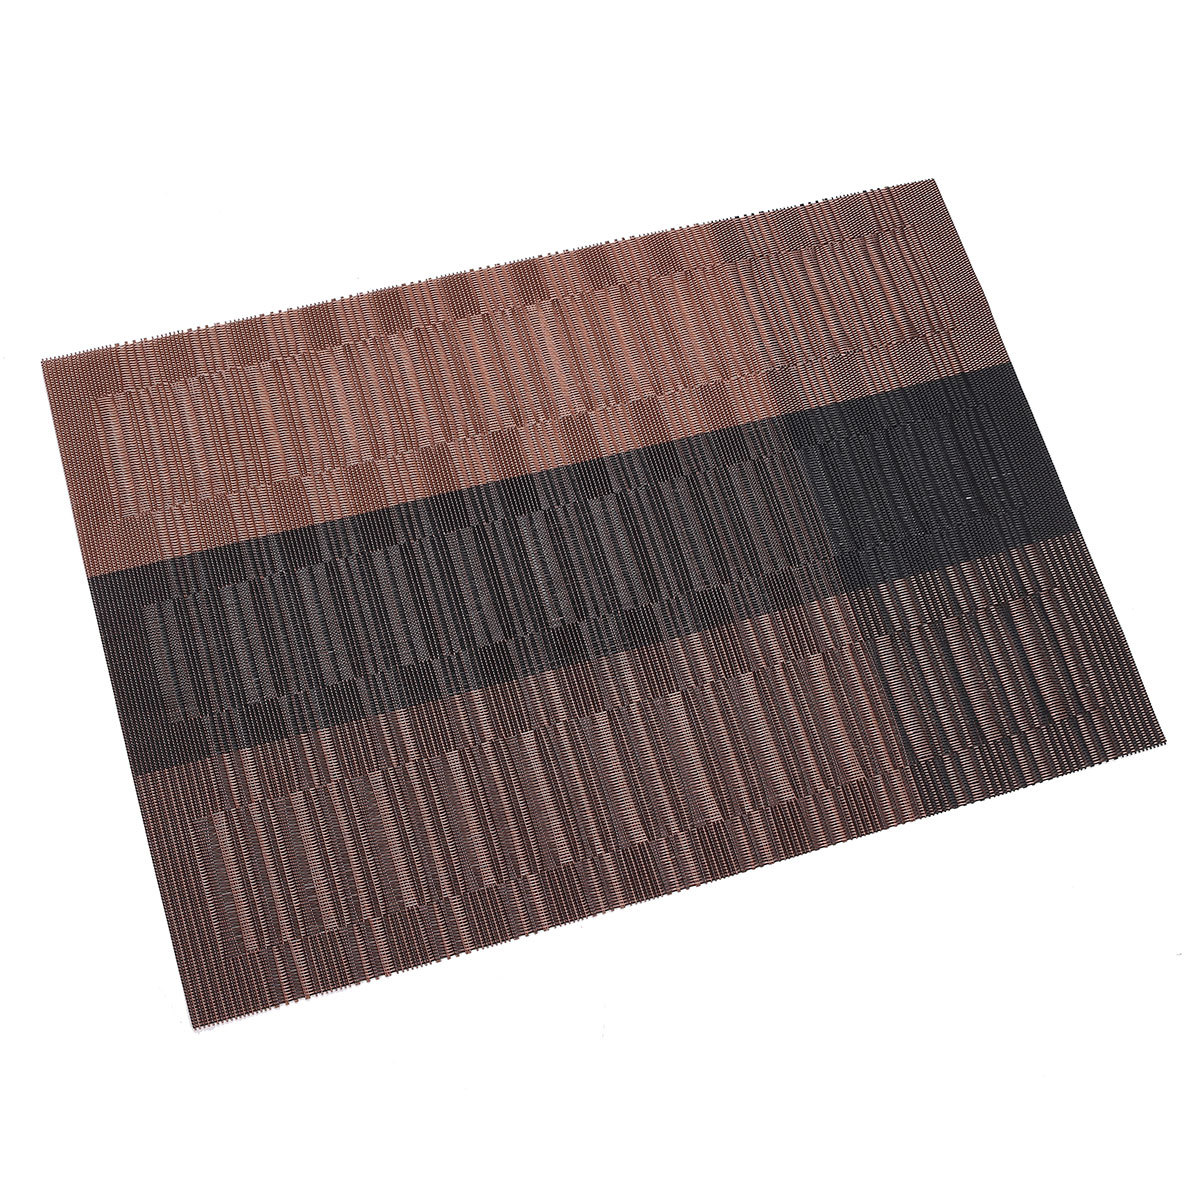 set of 4 vinyl dining table place mats placemats pad weave woven effect modern ebay. Black Bedroom Furniture Sets. Home Design Ideas